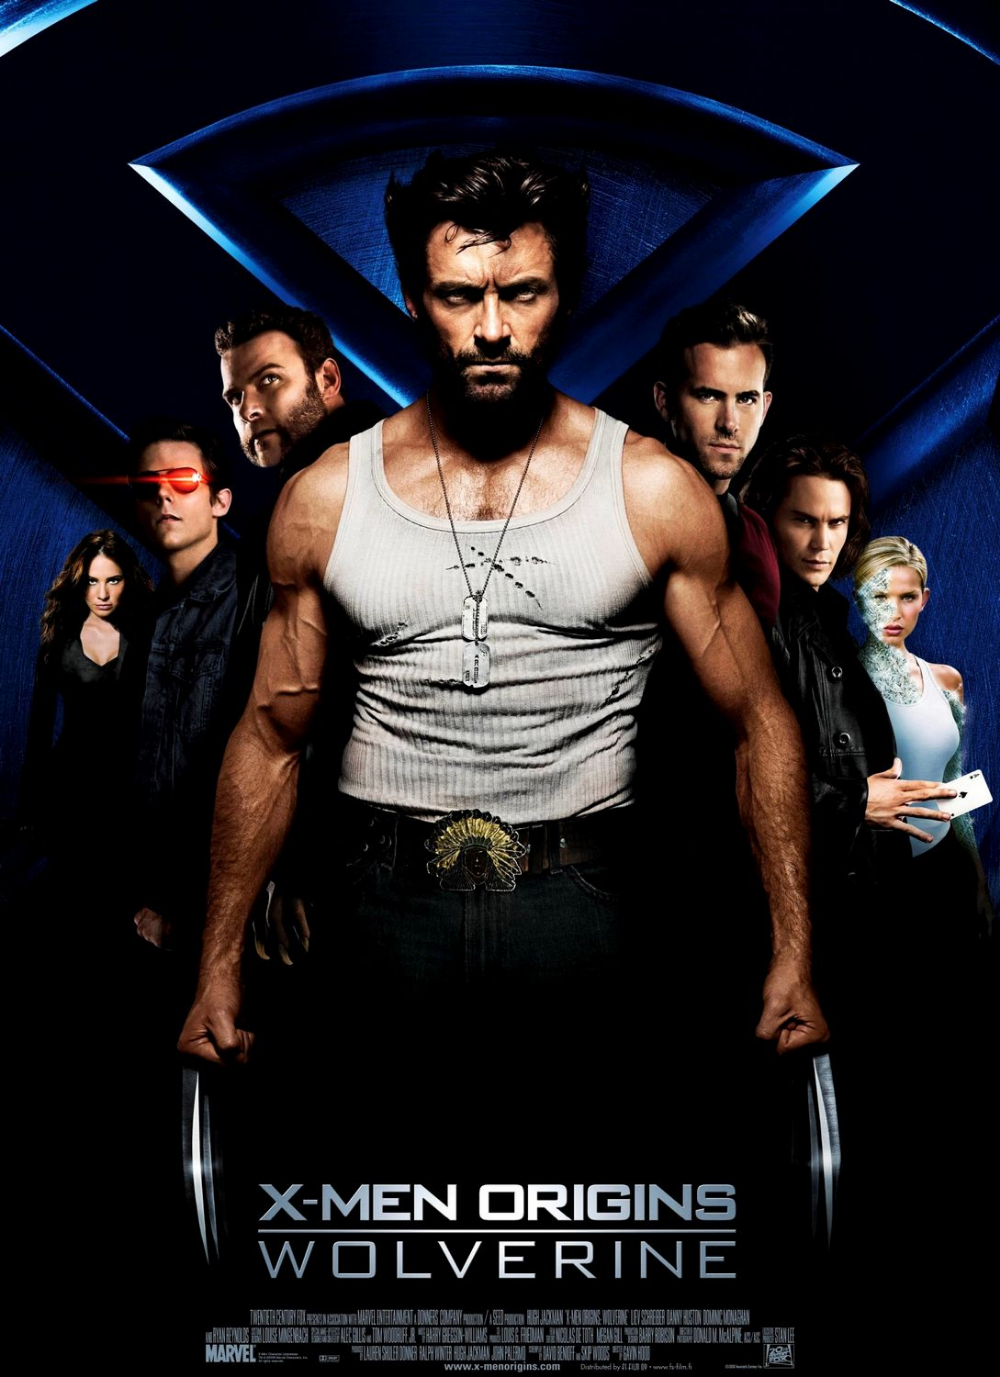 Pin By Alessio G On Serie Tv E Film In 2020 Wolverine Movie Wolverine Poster Man Movies